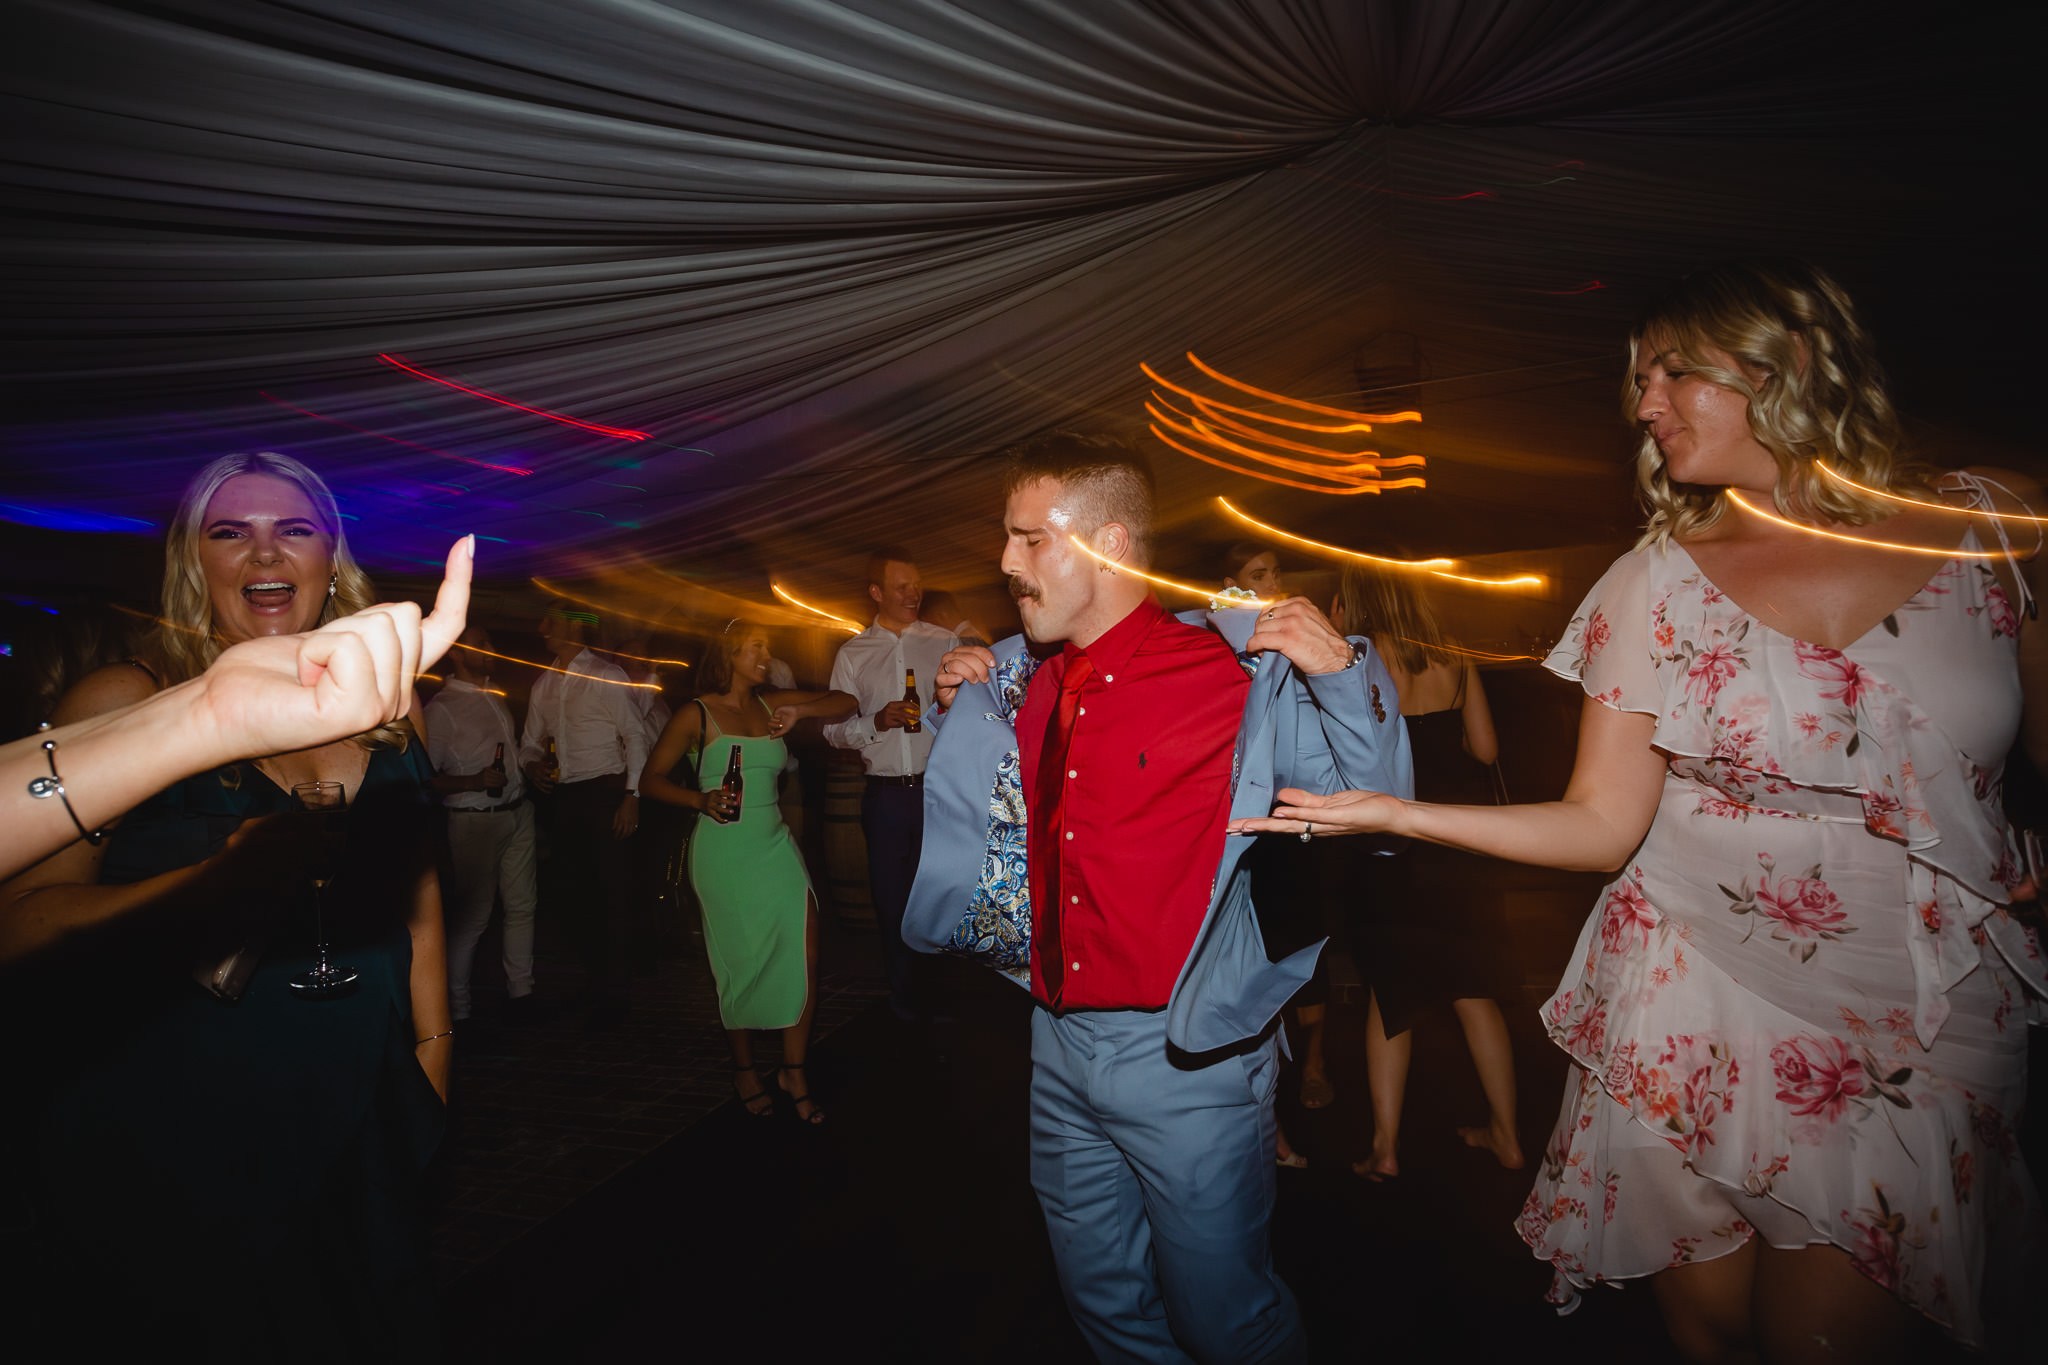 party photo of guests dancing at wedding reception